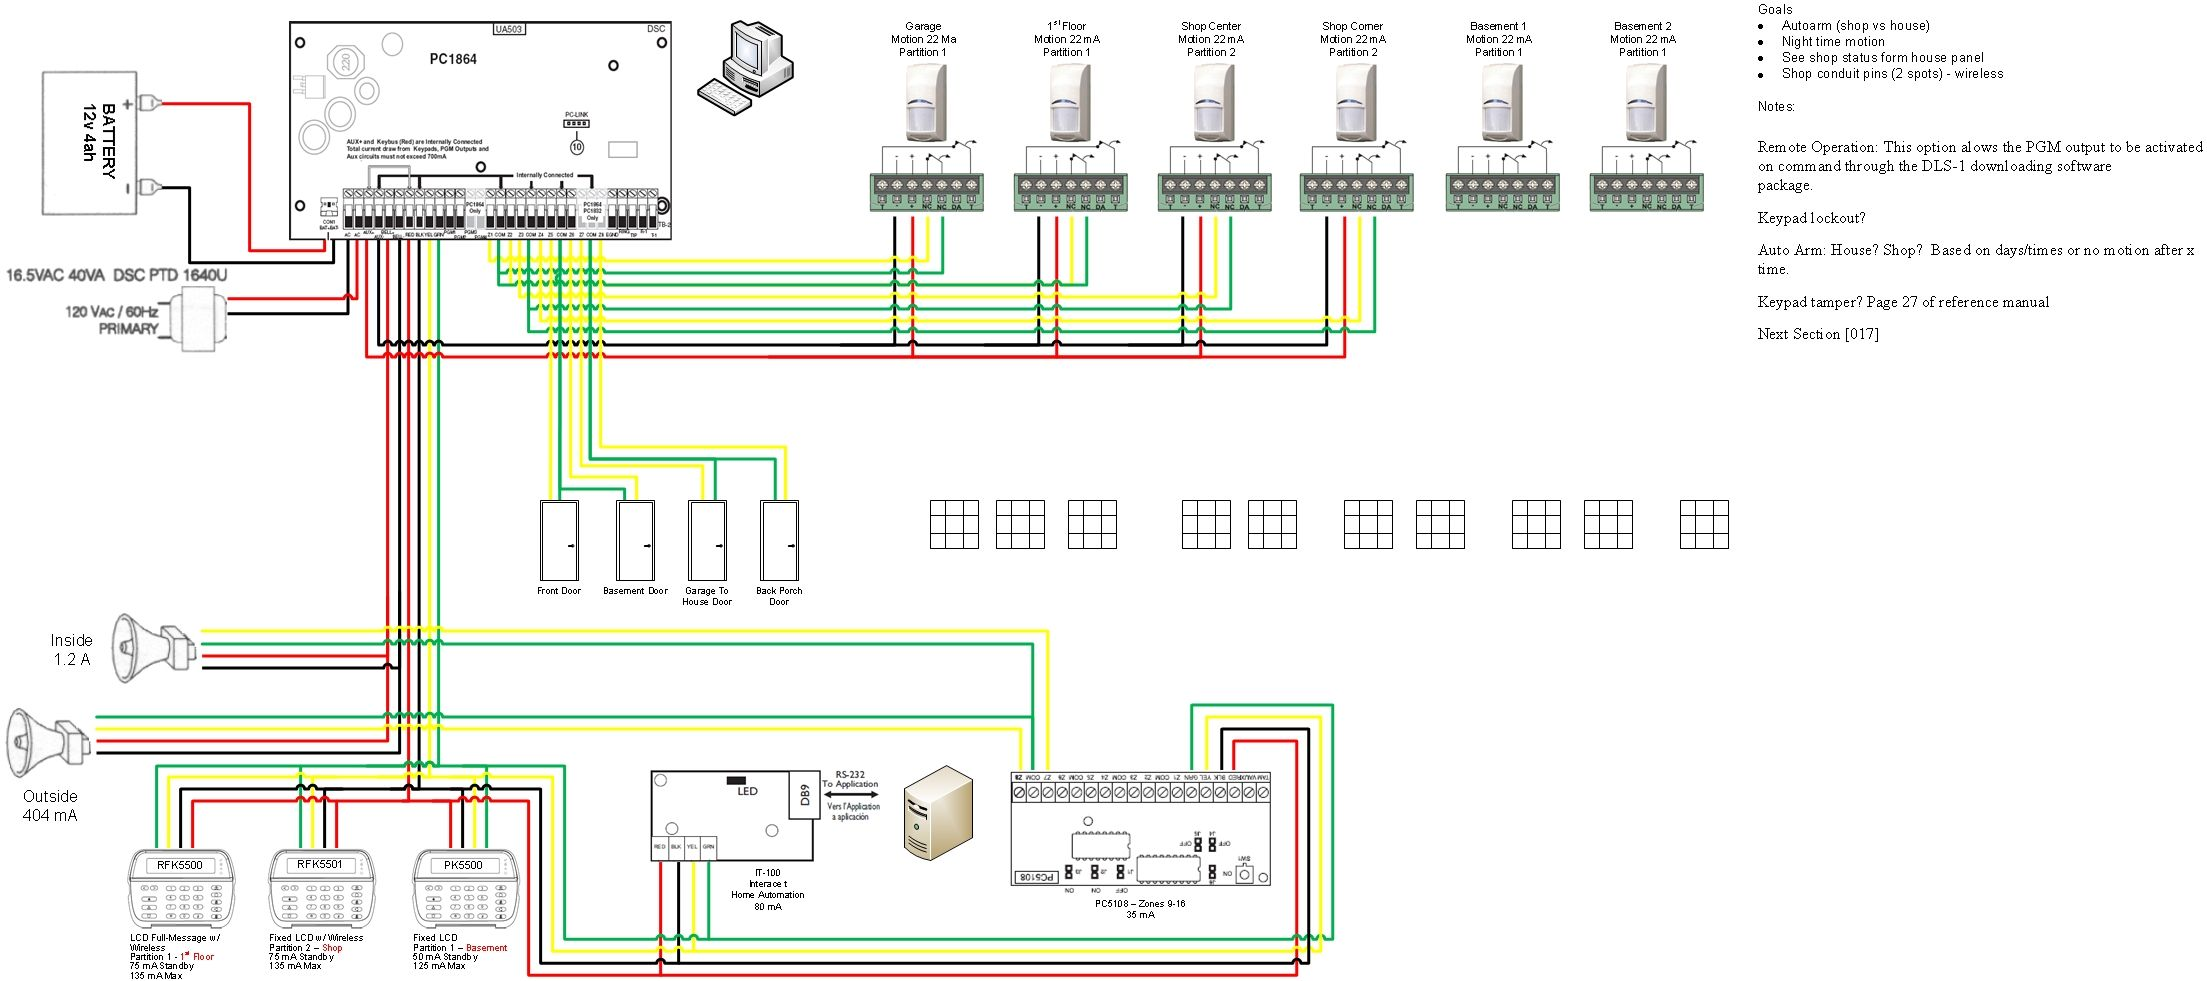 security wiring plans wiring diagram option golf cart security wiring diagram [ 2207 x 981 Pixel ]